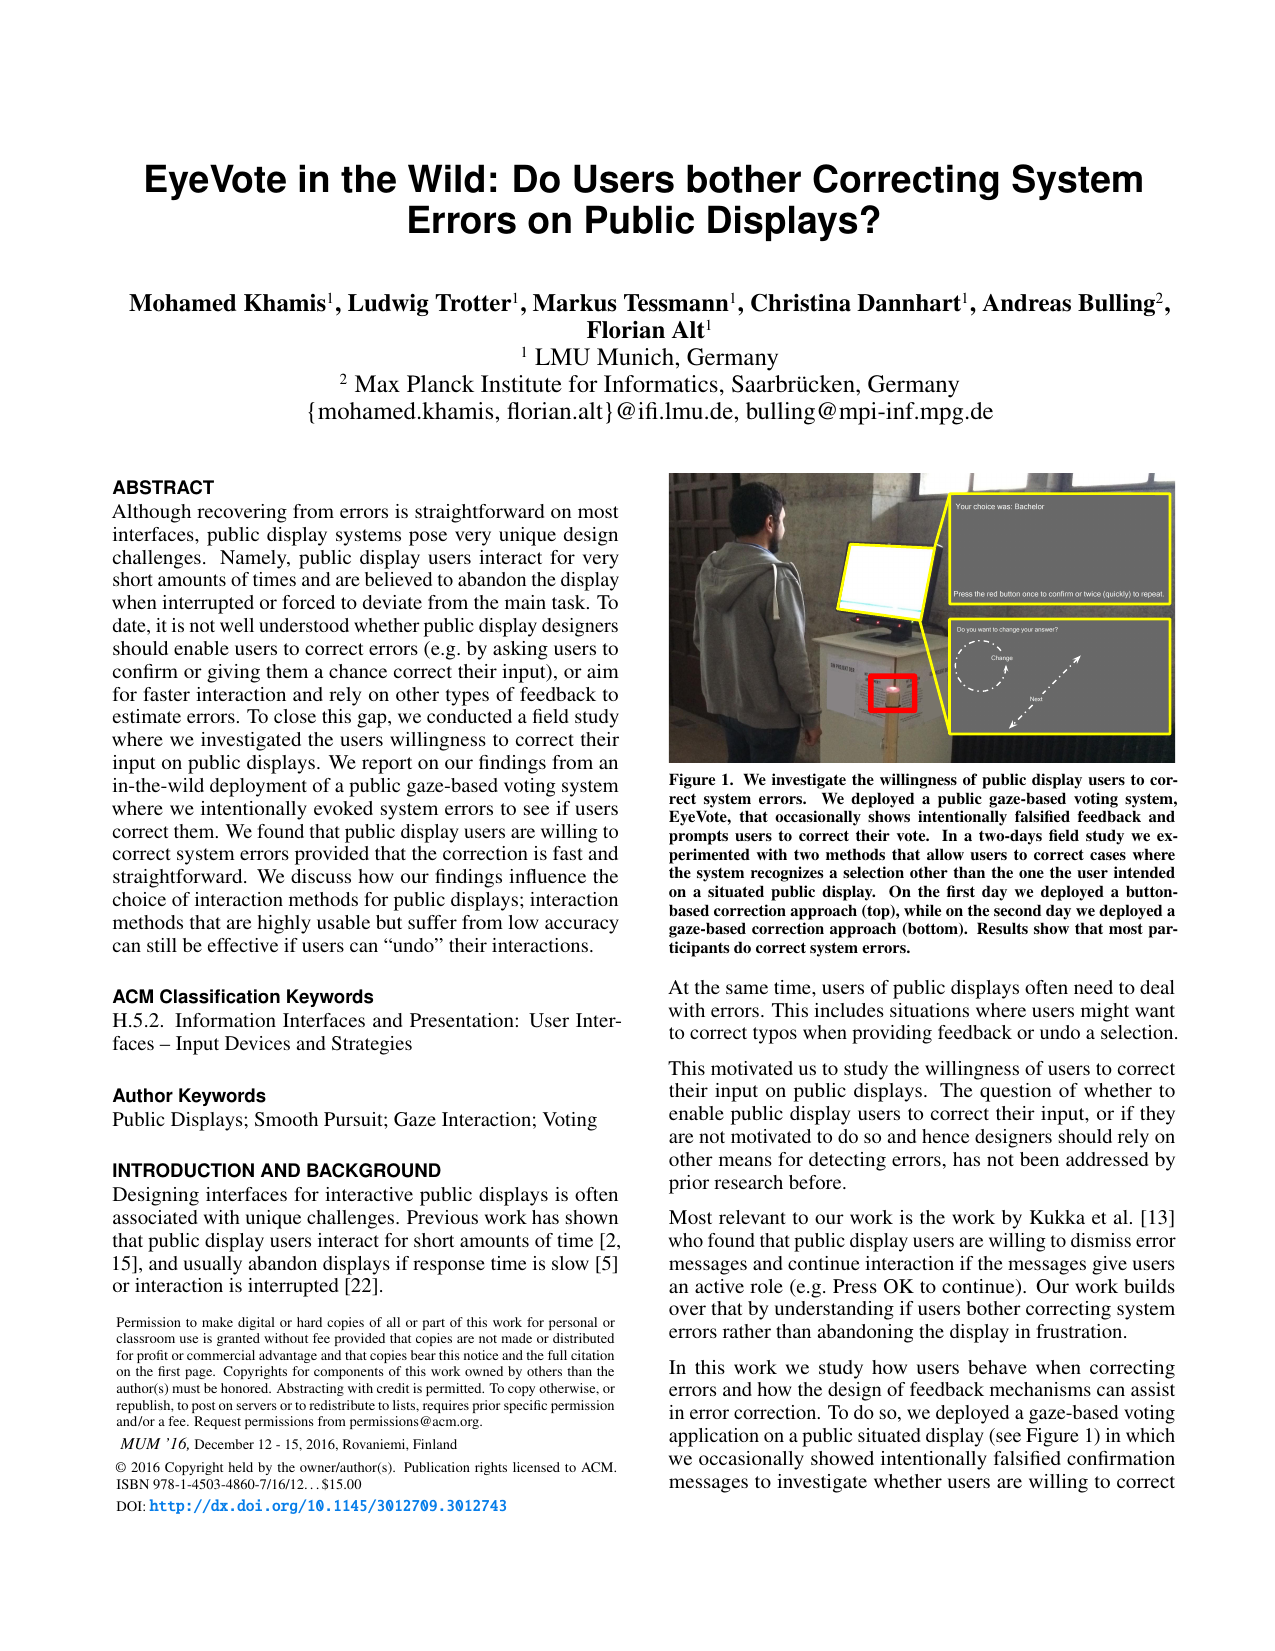 EyeVote in the Wild: Do Users bother Correcting System Errors on Public Displays?